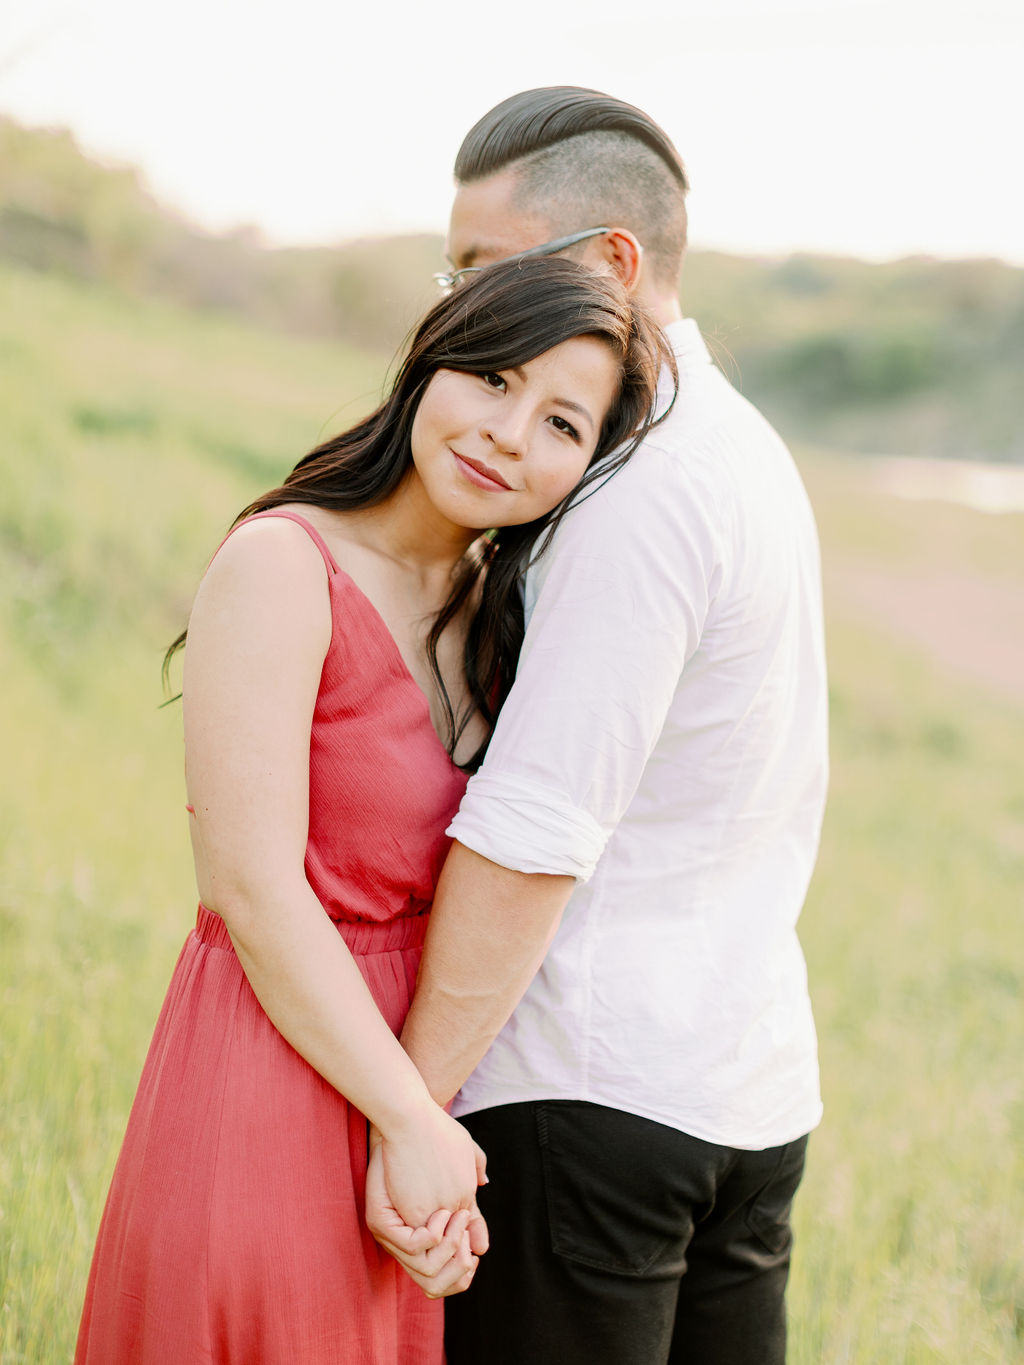 Austin-Film-Wedding-Photographer-Engagement-Session-Fun-adventure-outdoor-fine-art-16.jpg